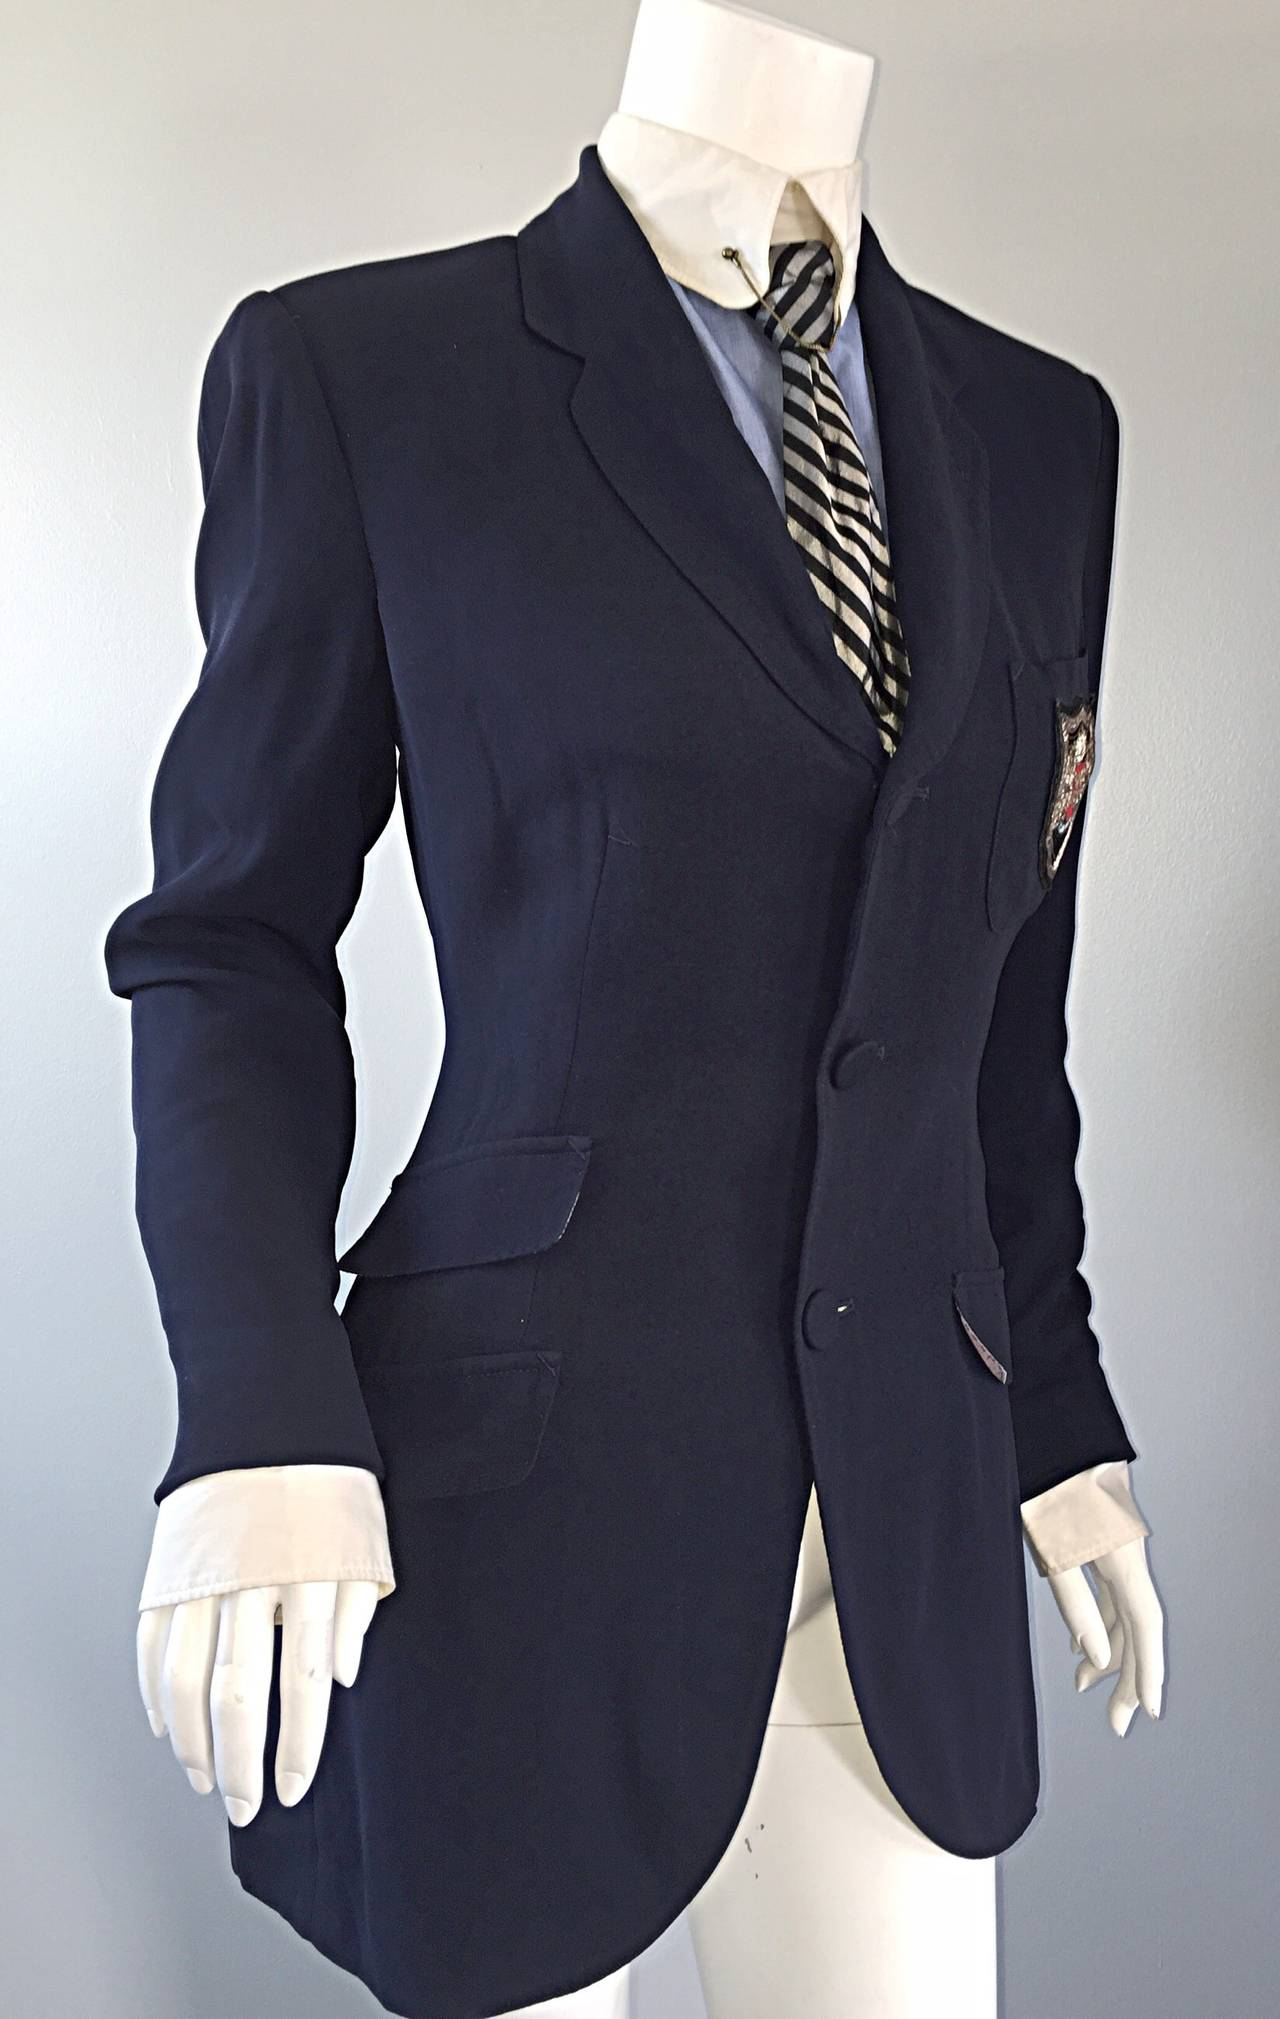 Extremely Rare Vintage Jean Paul Gaultier ' Schoolboy ' All - In - One Blazer 7